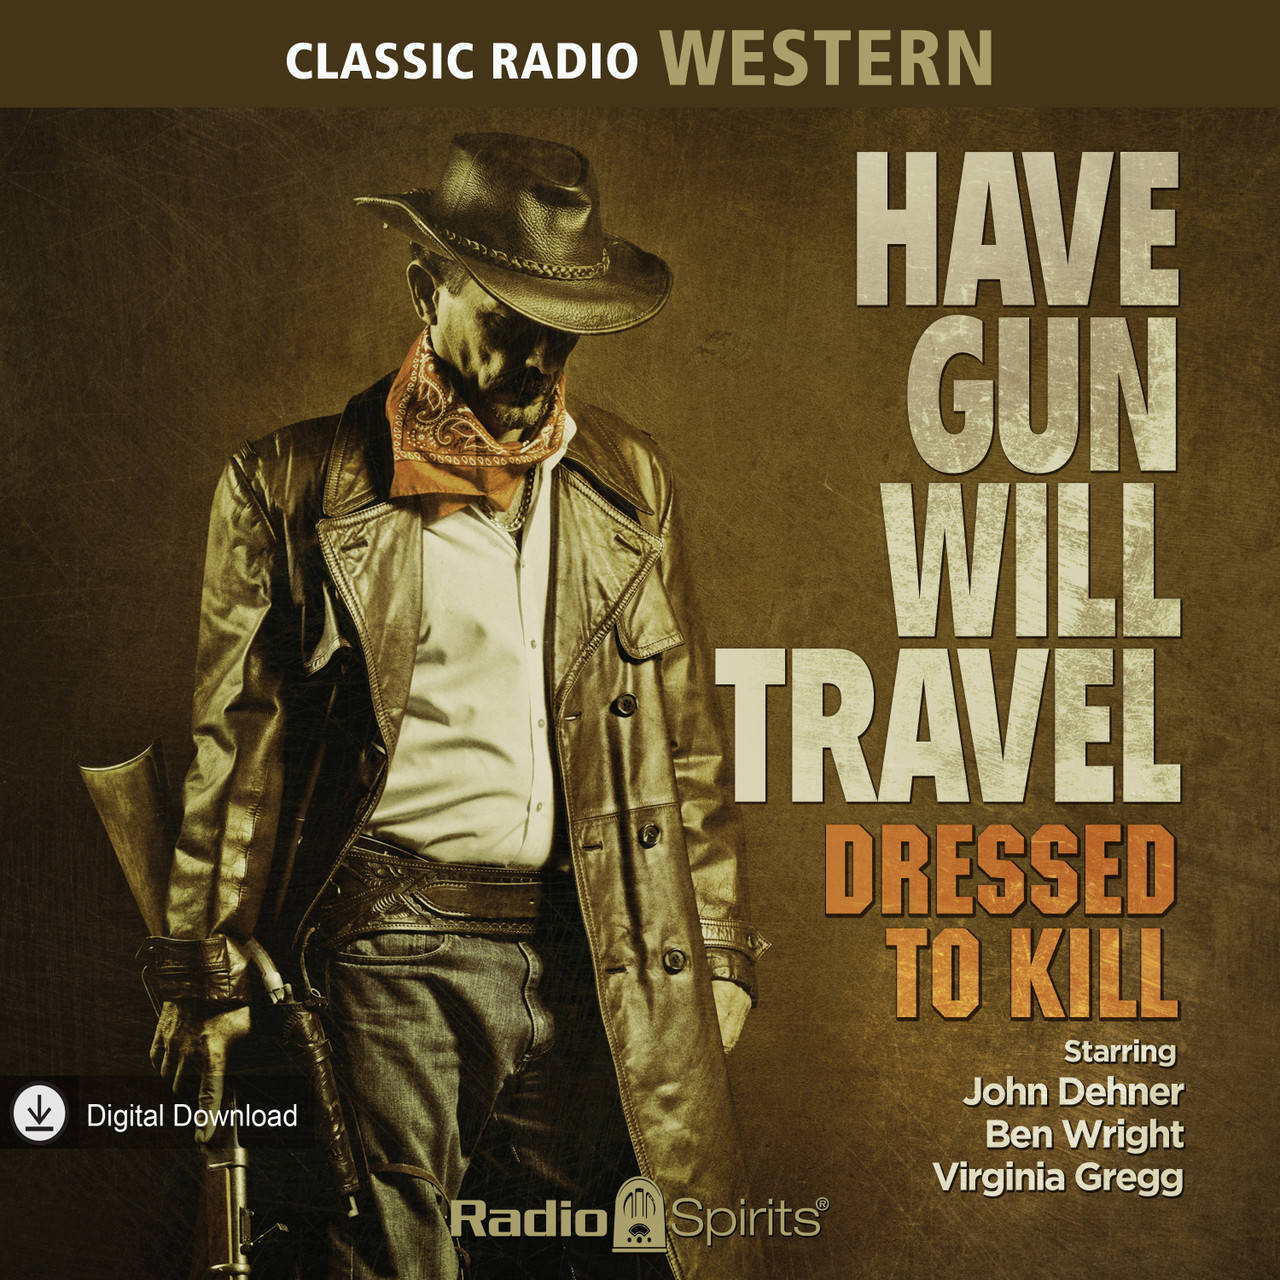 Have Gun - Will Travel: Dressed to Kill